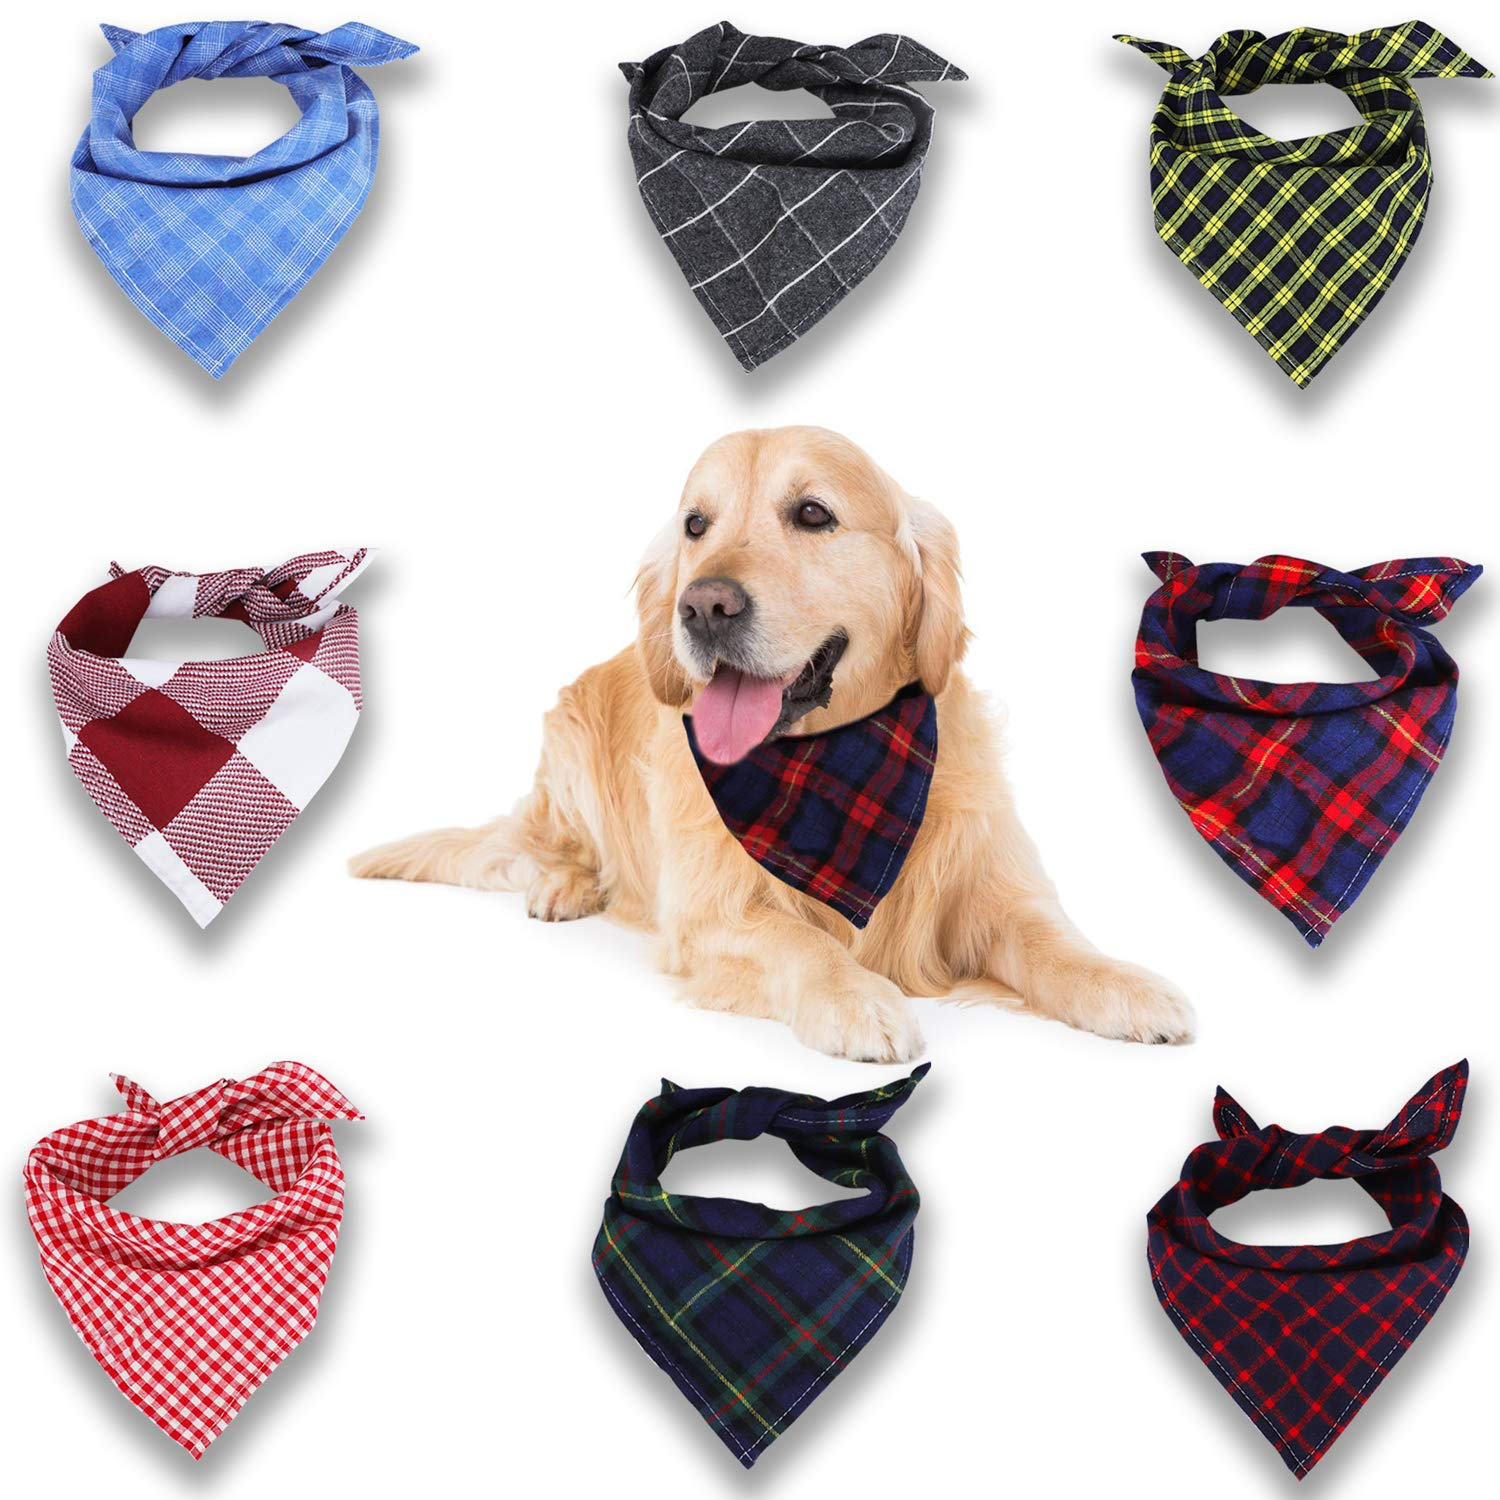 Dog Bandana, VIPITH Cotton Triangle Bibs Scarf Washable Printing Dog Scarf for Pets, Dogs and Cats 8 Styles 3 Thicknesses (Pack of 8)